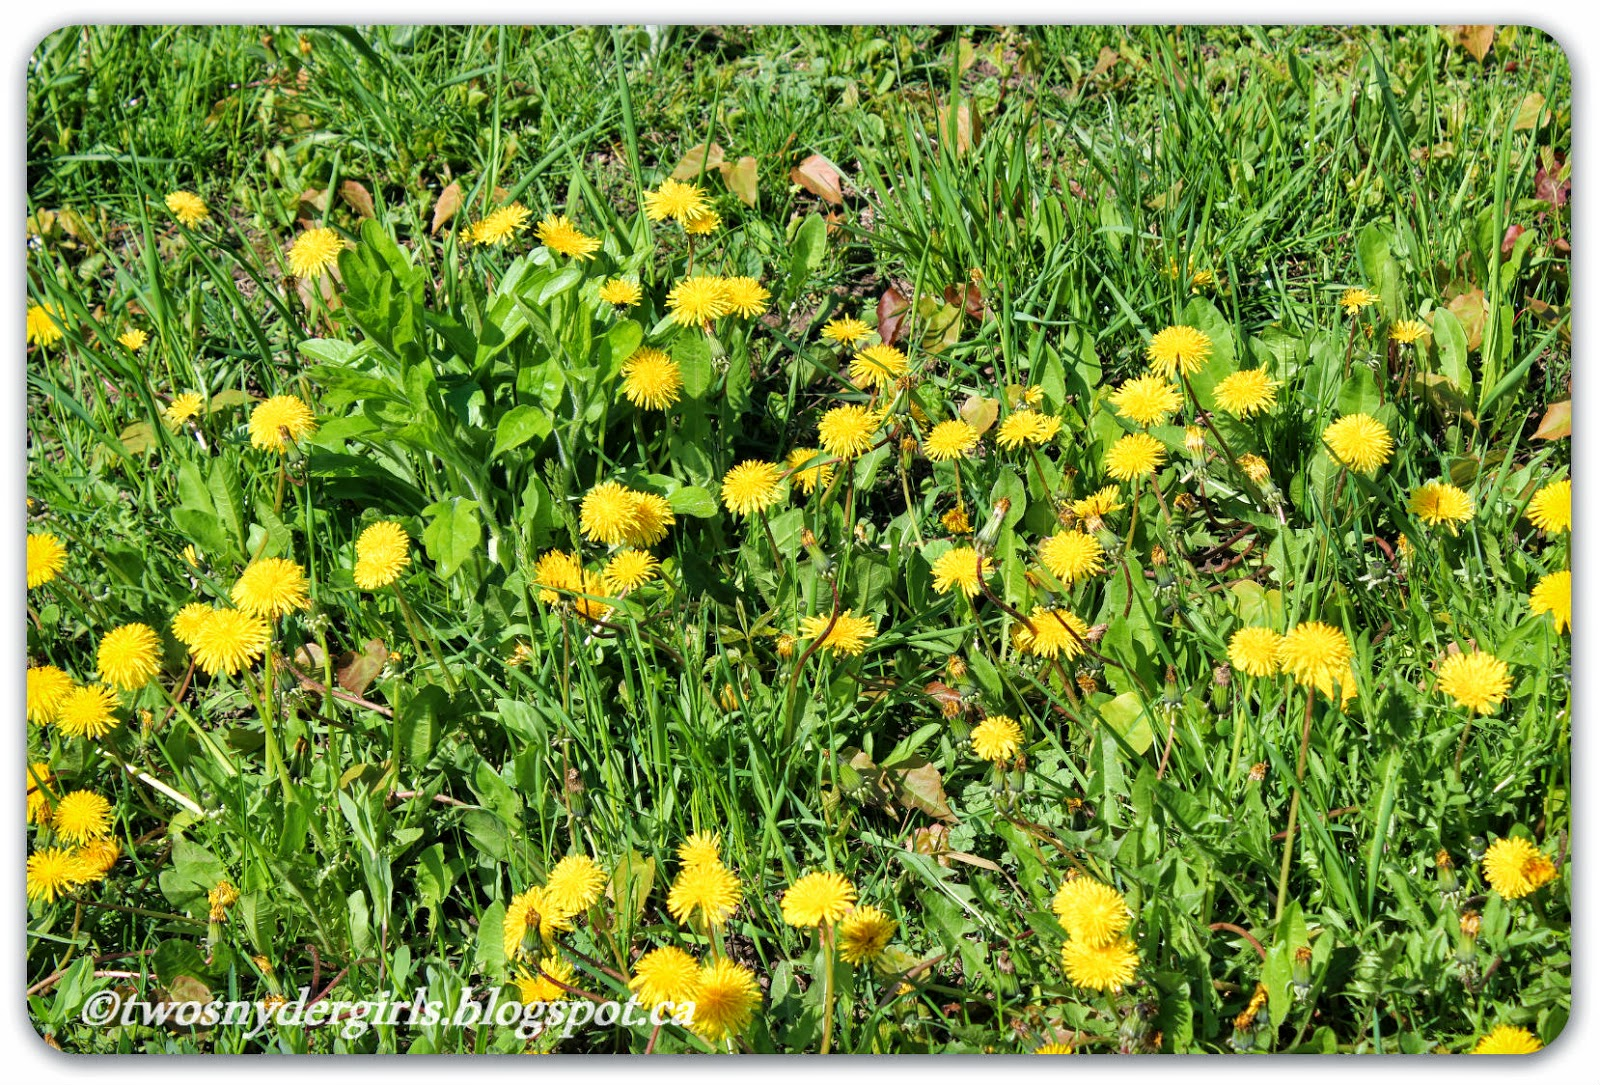 Dandelions in the lawn